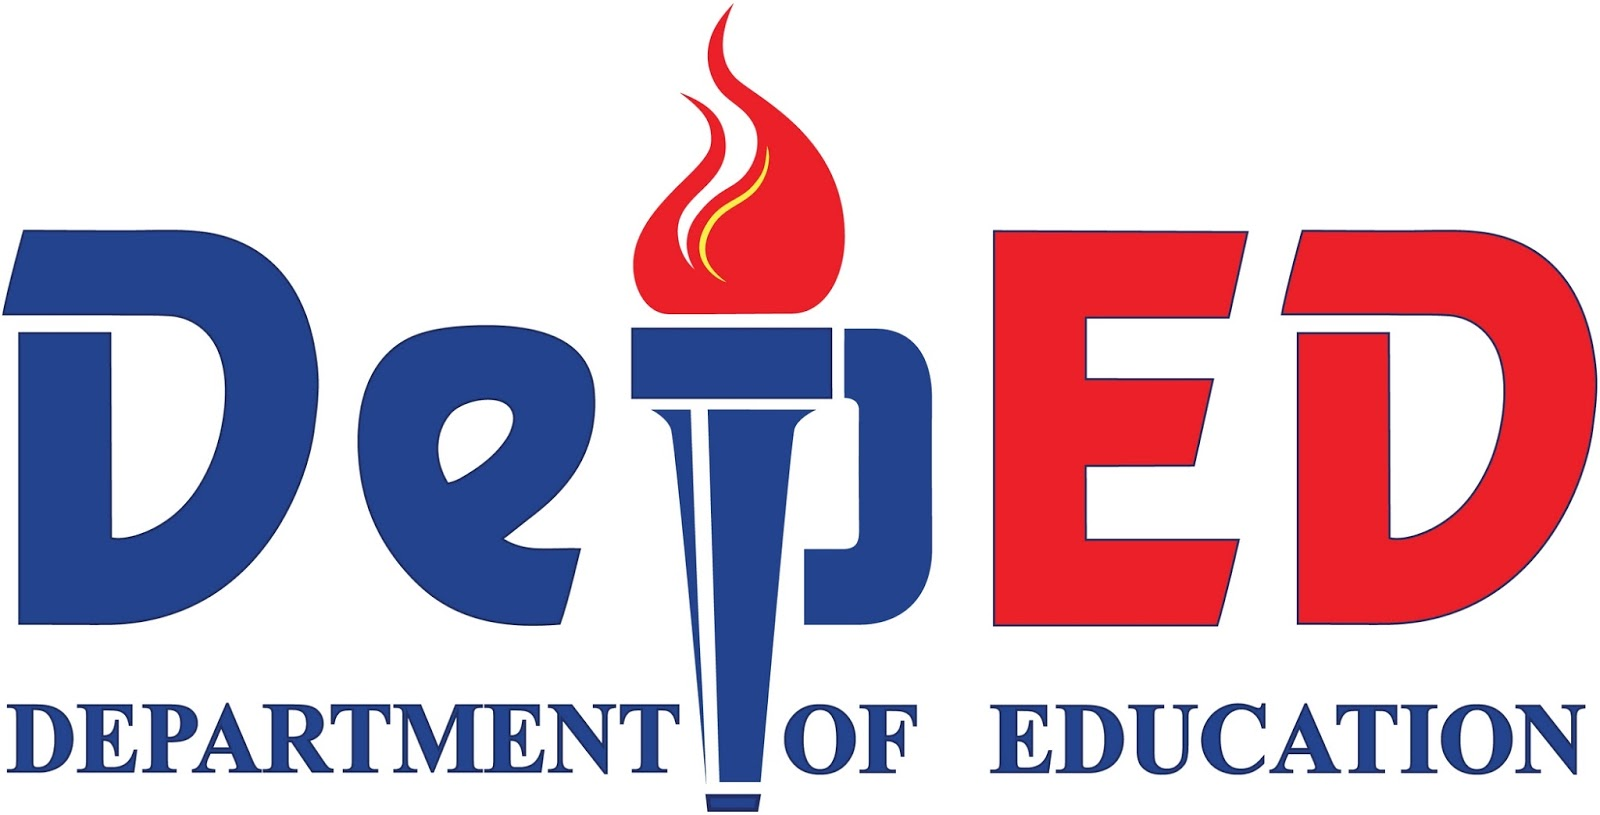 DepED Department of Education Logo Seal